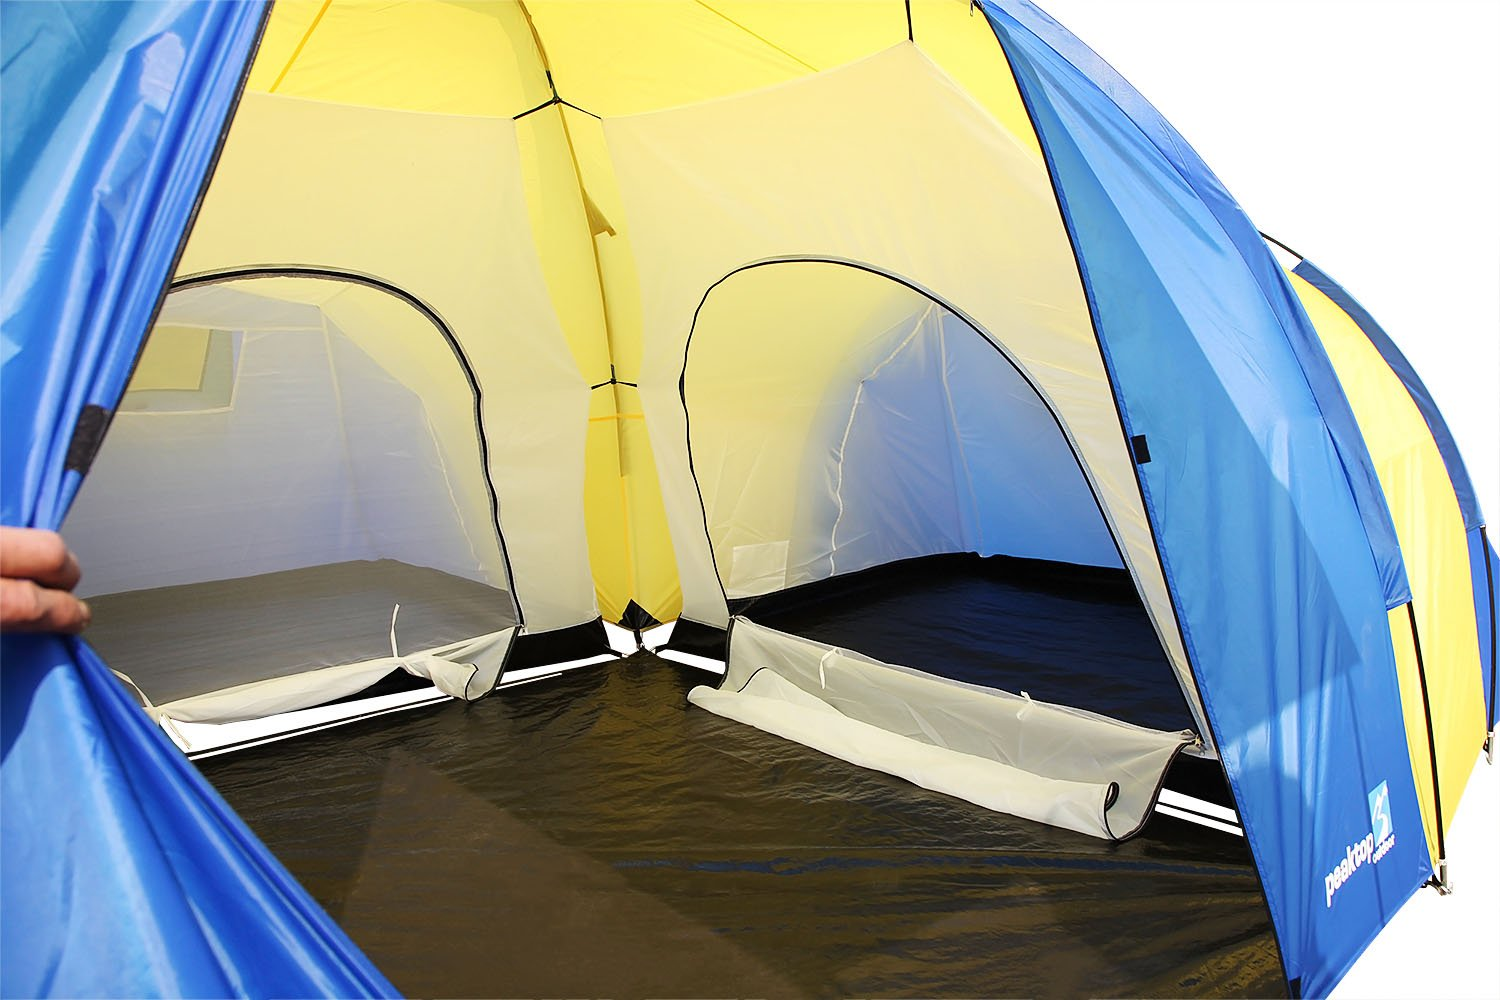 Peaktop 3 Bedrooms 1 Large Living Room 8 Persons Camping Tent Family Group Double Poles Hiking Beach Outdoor Tunnel Dome 3000mm Waterproof &UV Coated Bright Color 1 Year Warranty (5 Shapes) 5